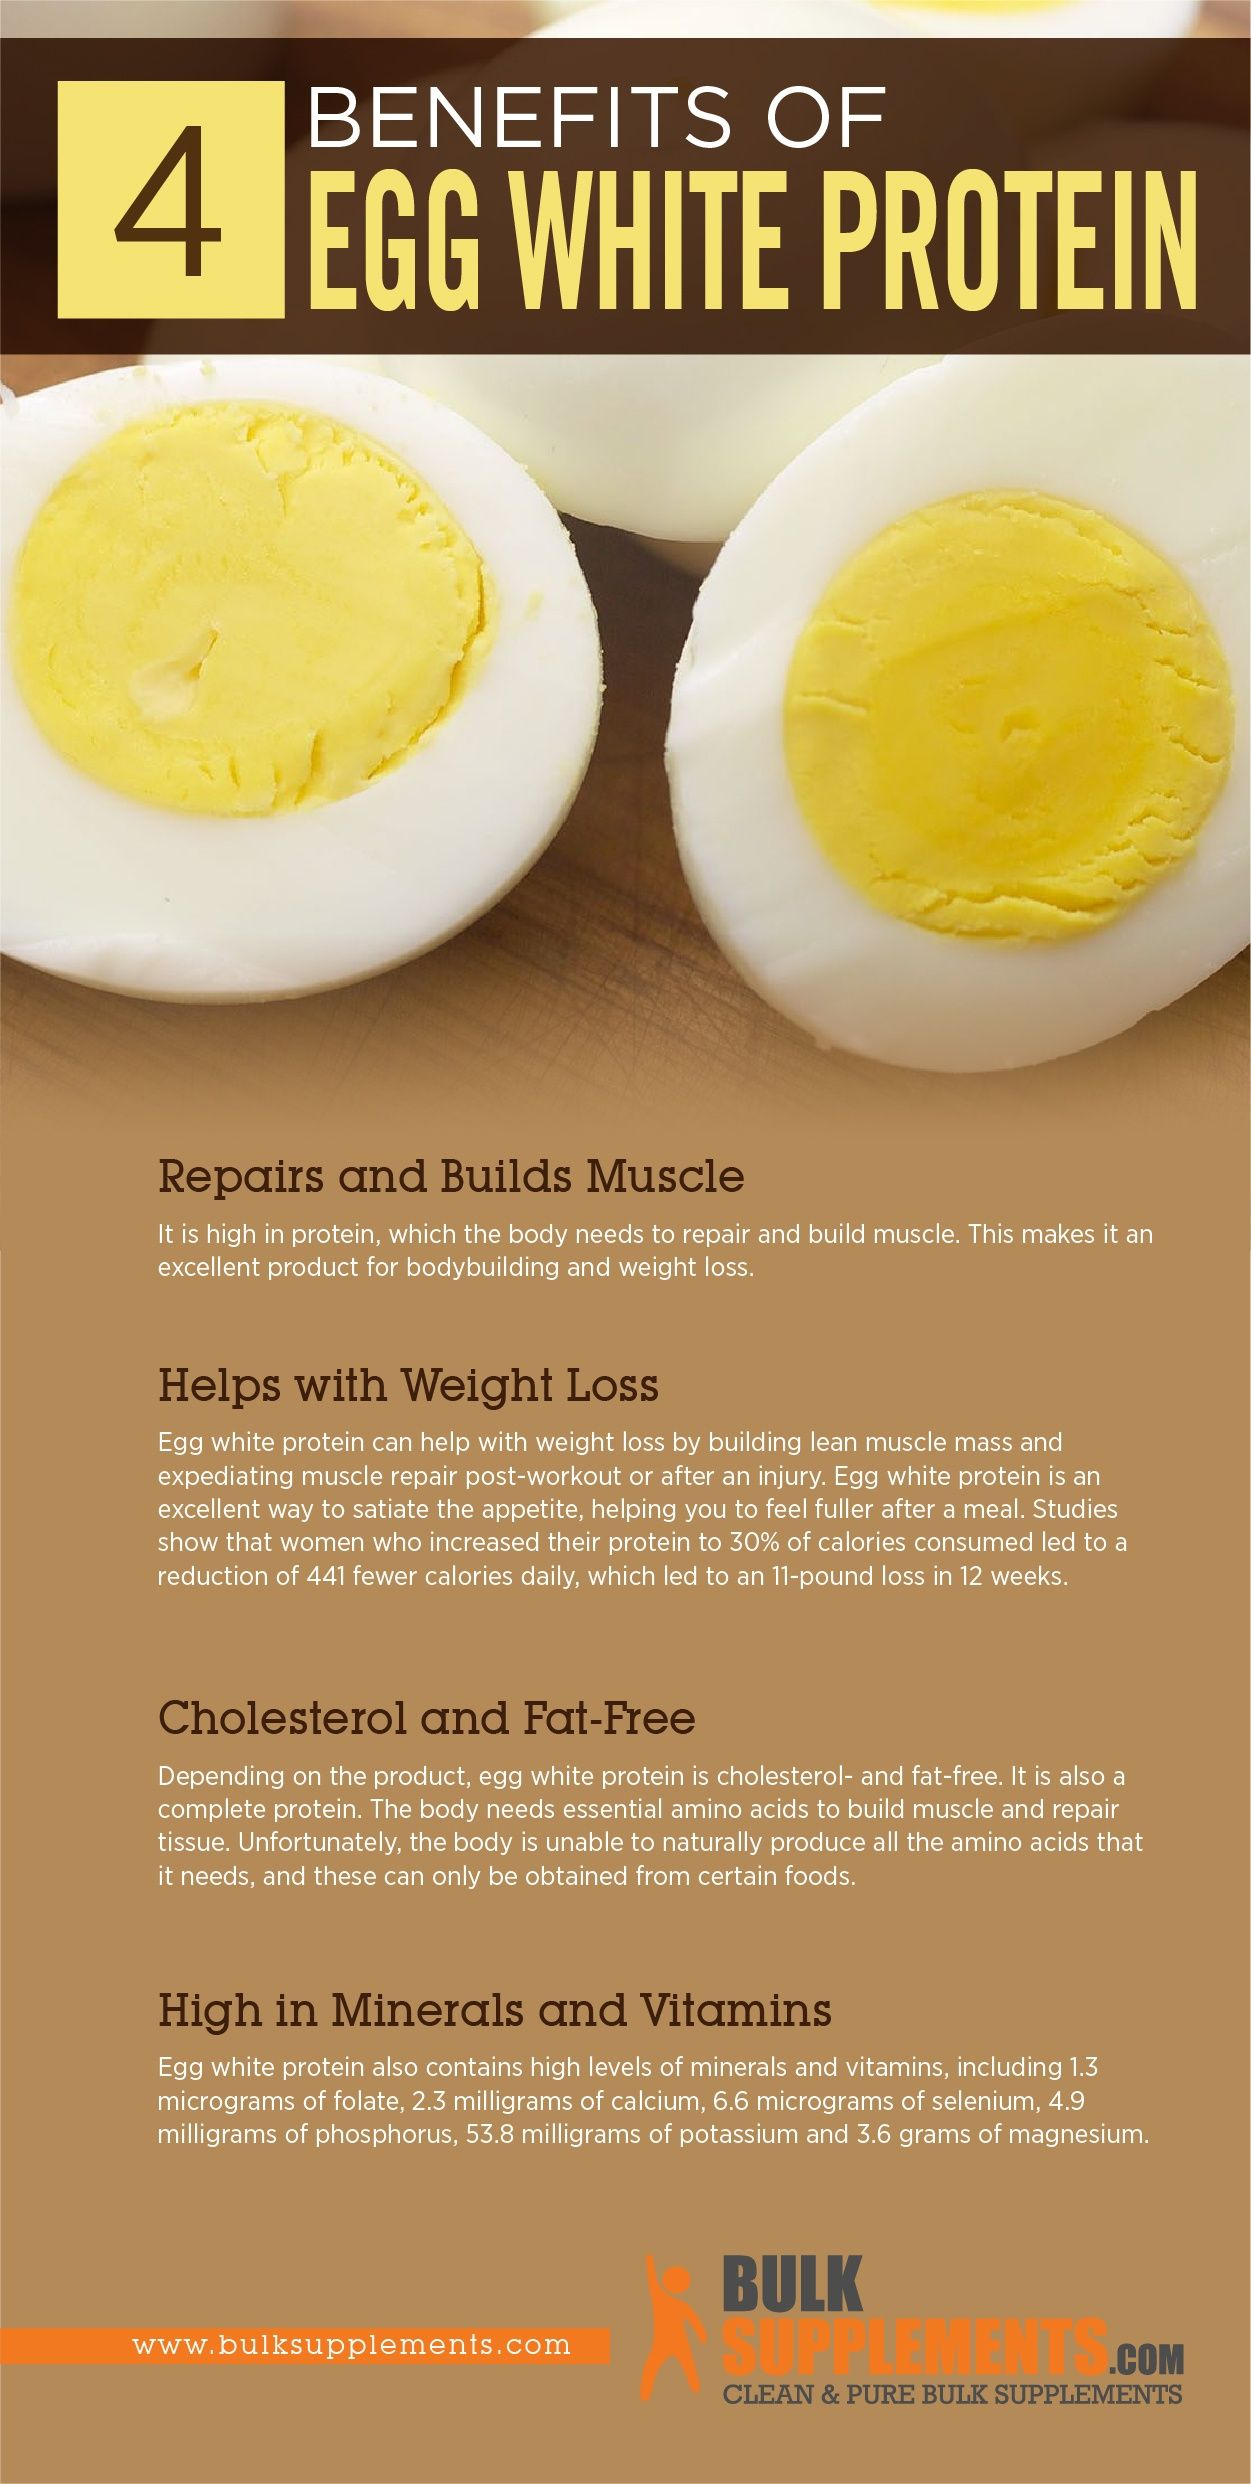 Egg White Protein Benefits Side Effects Dosage In 2020 Egg Benefits Egg White Protein Health And Nutrition